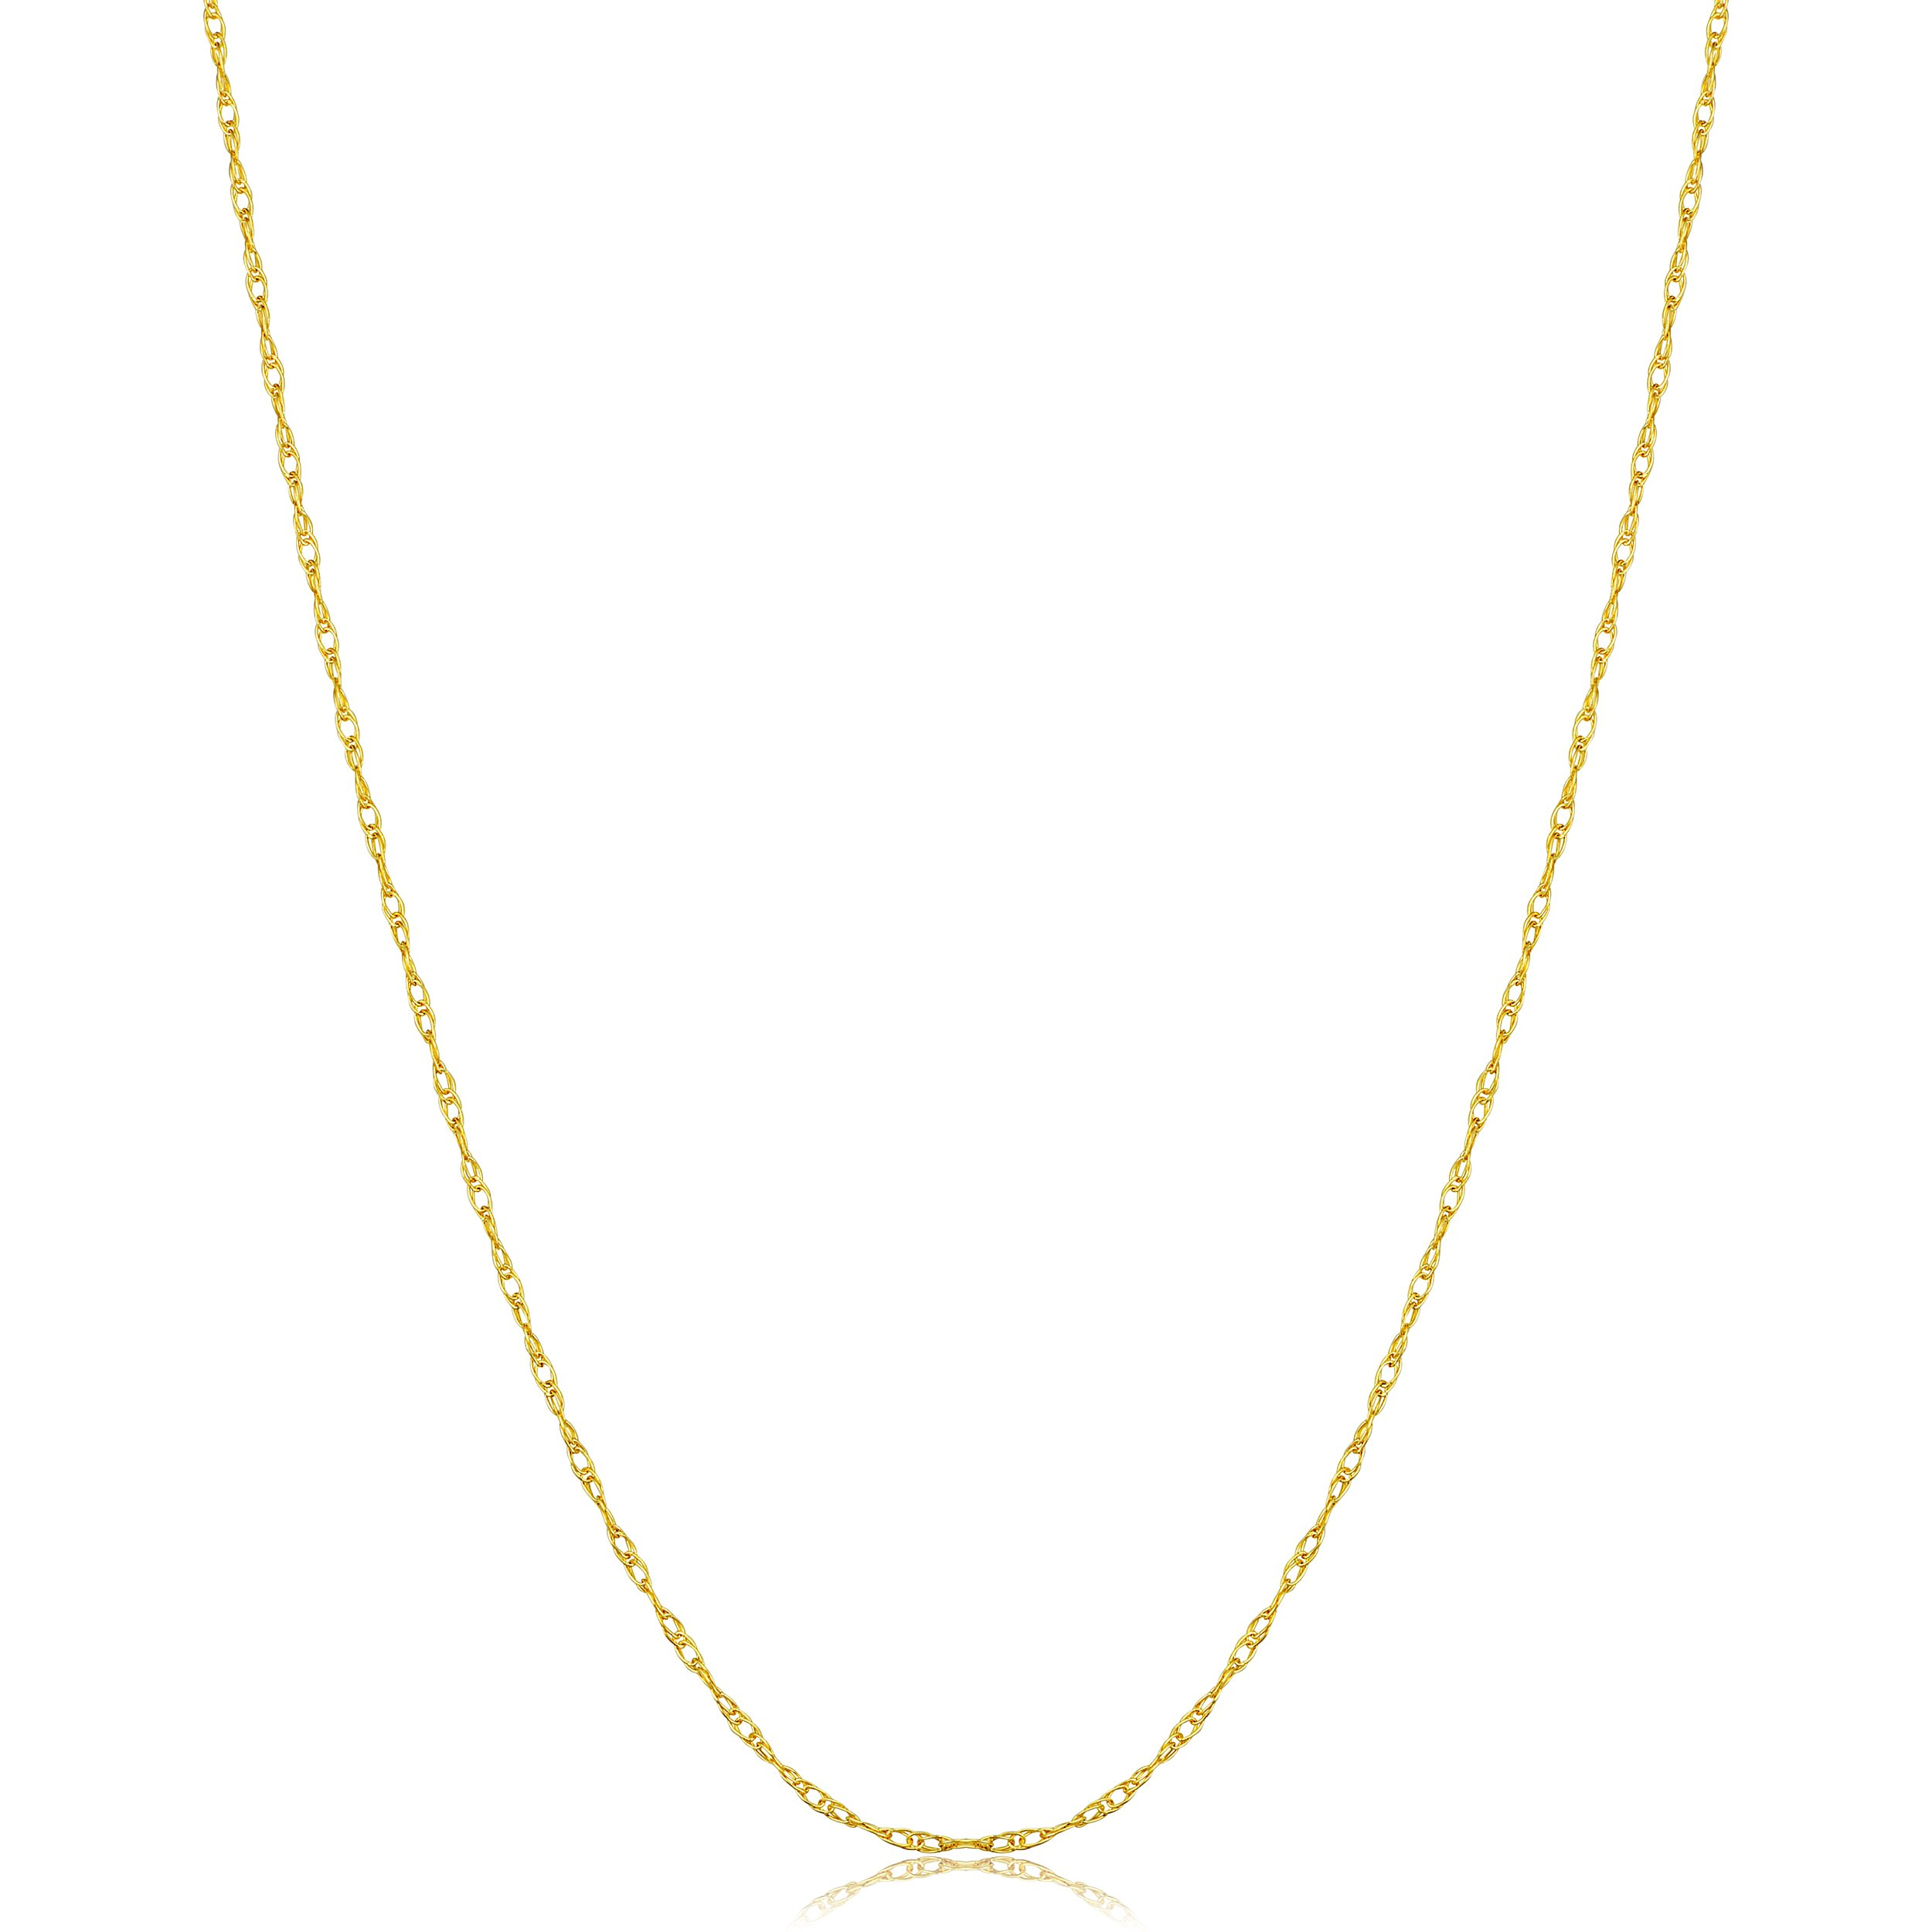 Kooljewelry Solid 14k Yellow Gold Dainty Rope Chain Necklace (0.8 mm, 18 inch)